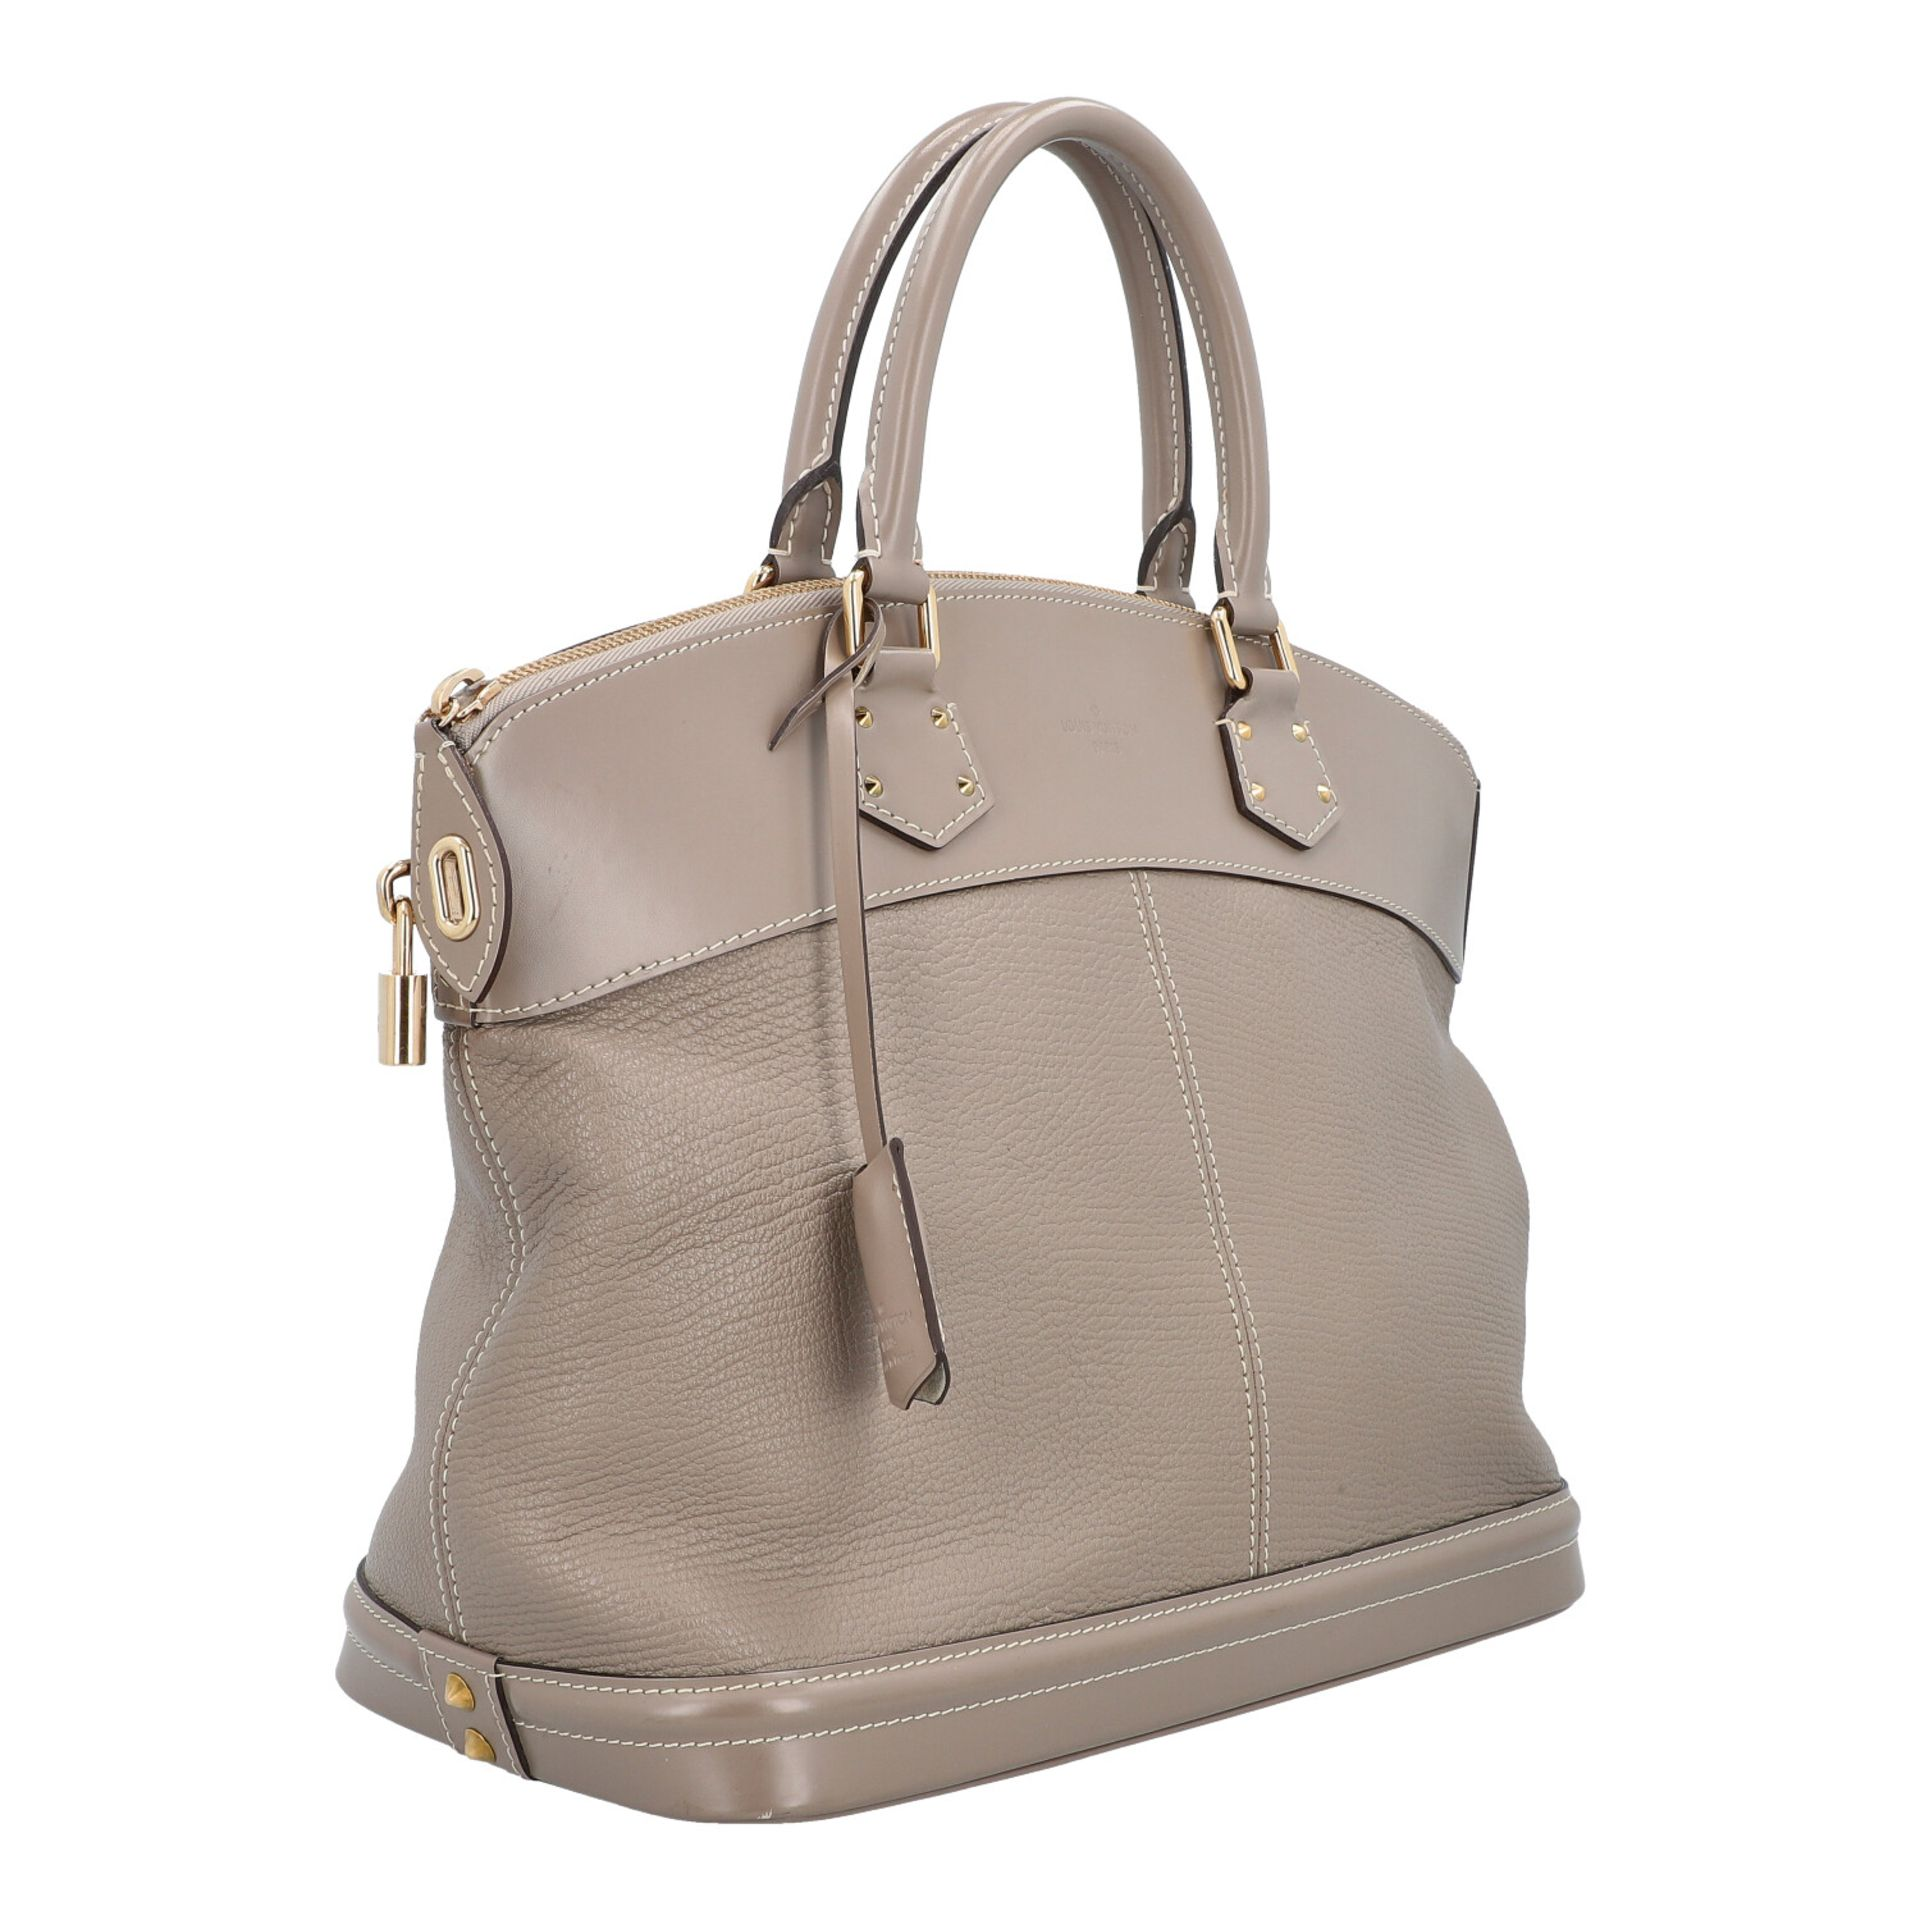 "LOUIS VUITTON Henkeltasche ""LOCK IT GM"", Koll.: 2007. Modell aus taupefarbenem Suhali- - Image 2 of 8"